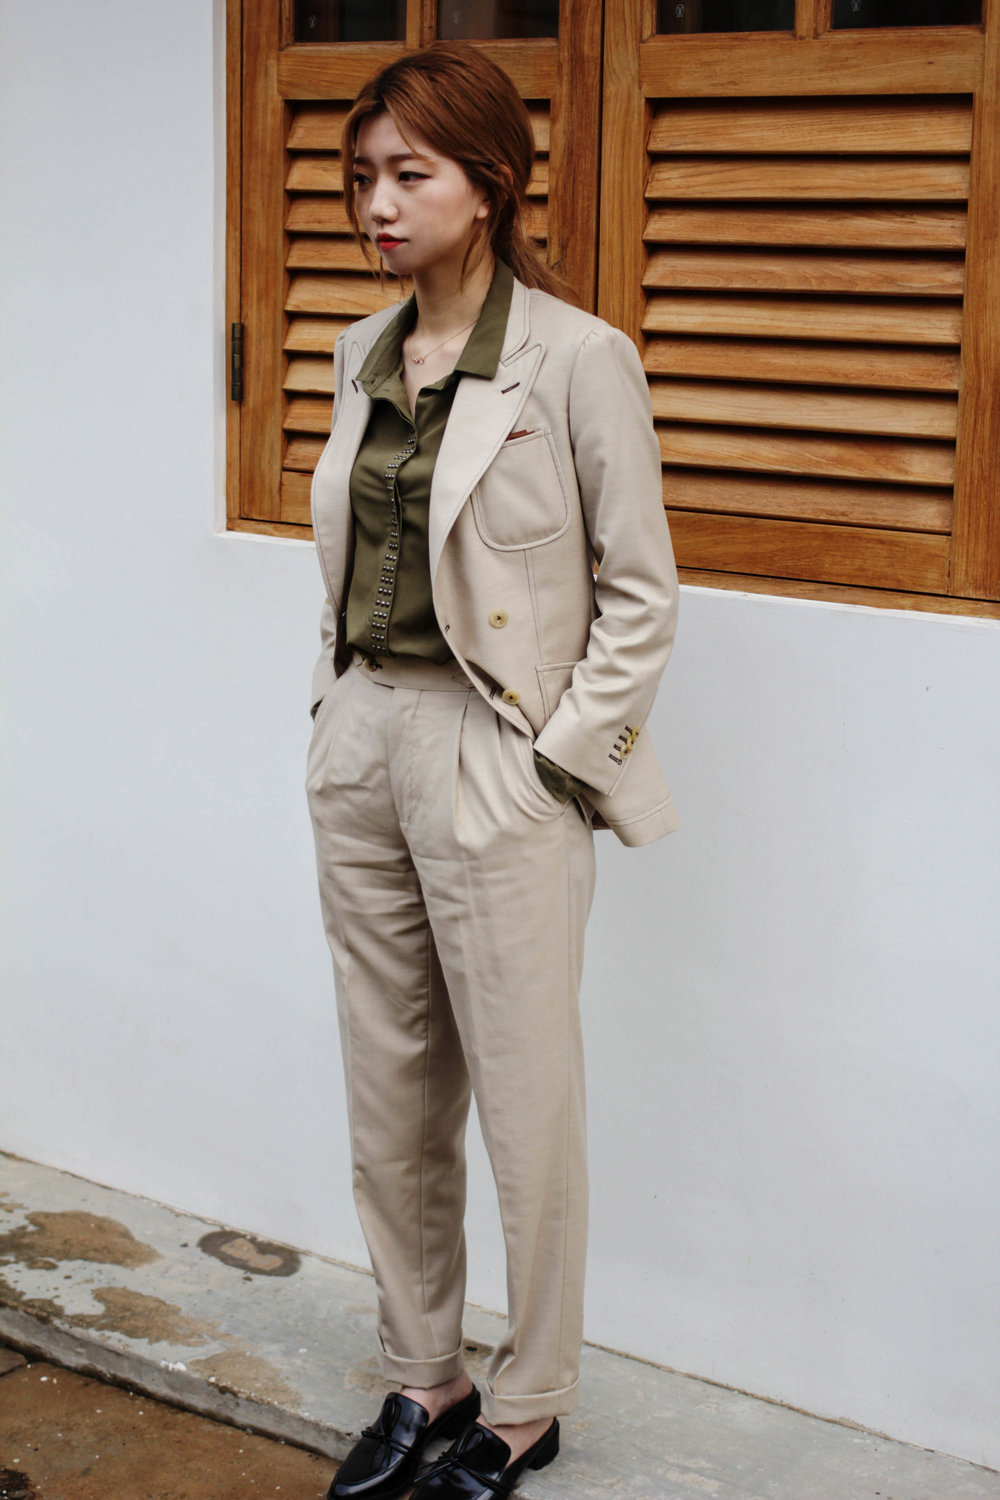 PEAK LAPEL ON THE SUIT WITH PLEATED TROUSERS FOR A SMART VINTAGE LOOK.